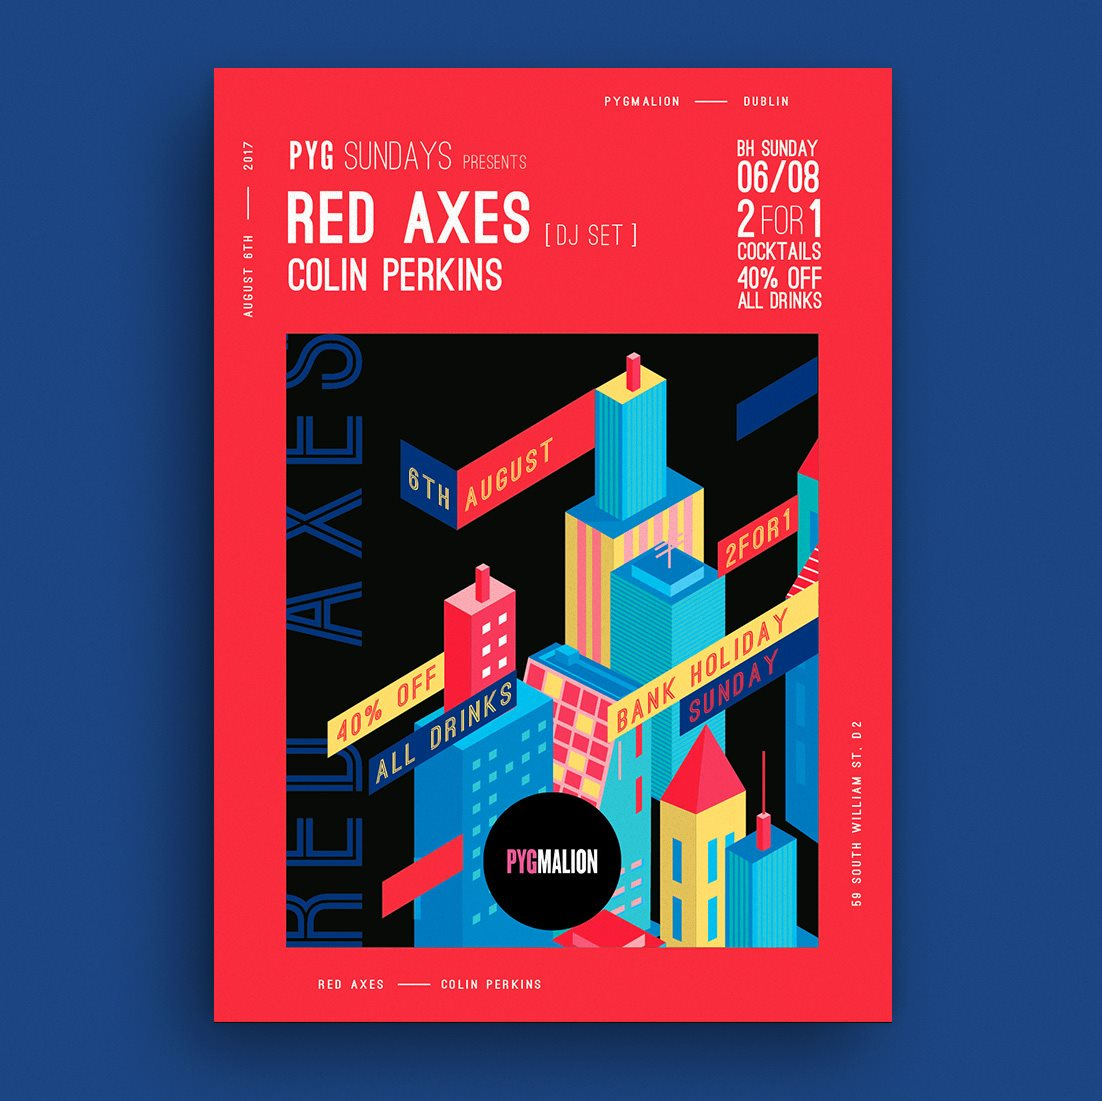 Pyg Sundays presents Red Axes - Flyer front